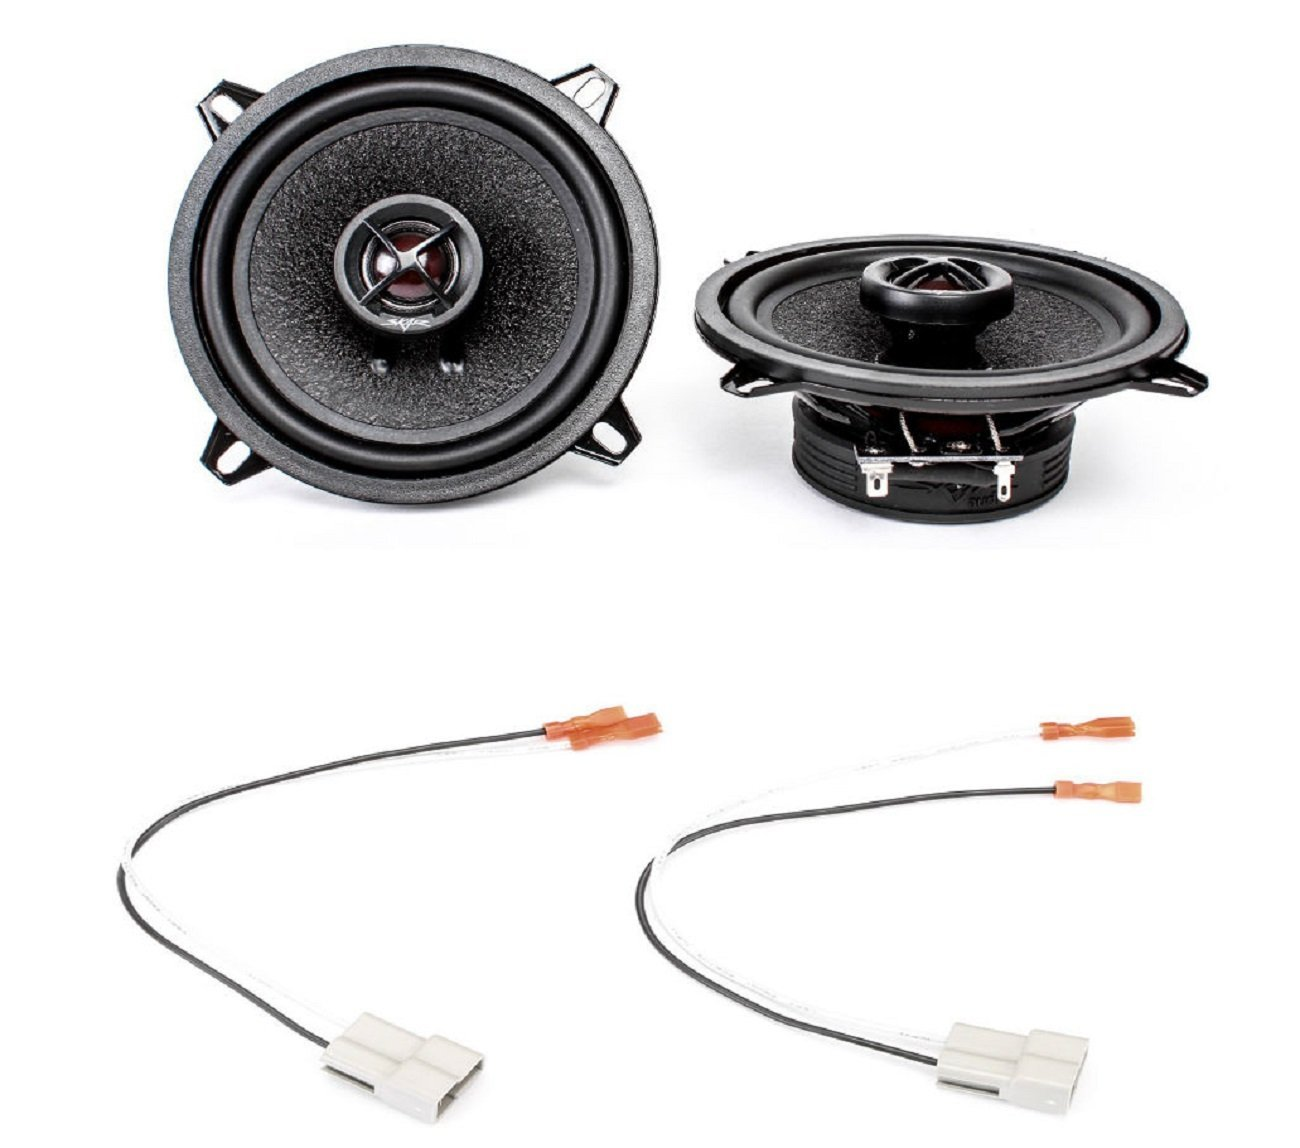 1990-1993 Geo Storm Front Door 5.25' 240 Watt Replacement Upgrade Speakers by Skar Audio